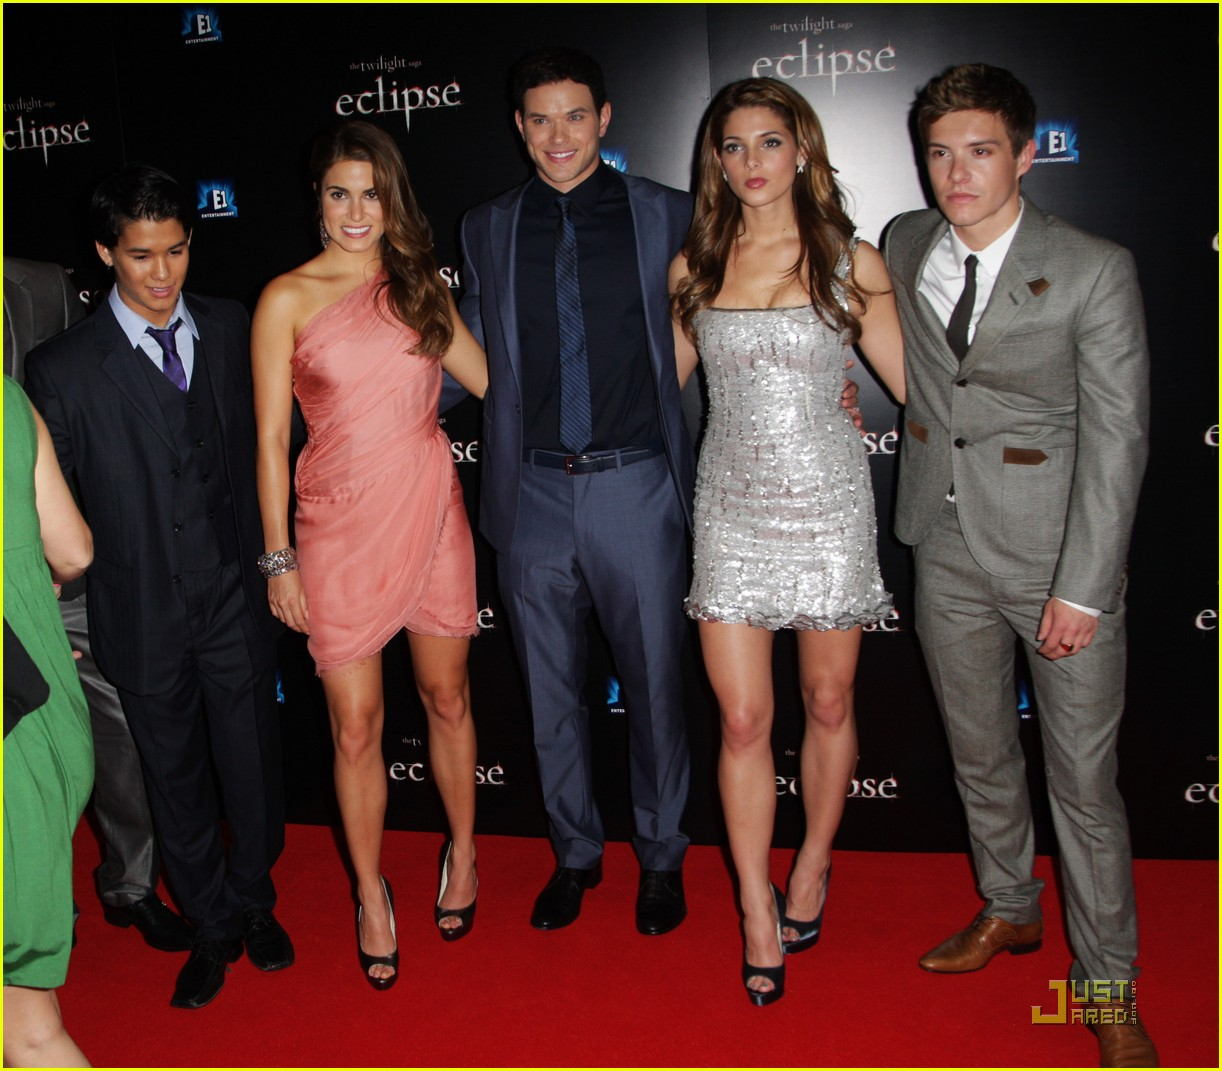 twilight cast eclipse london premiere 14